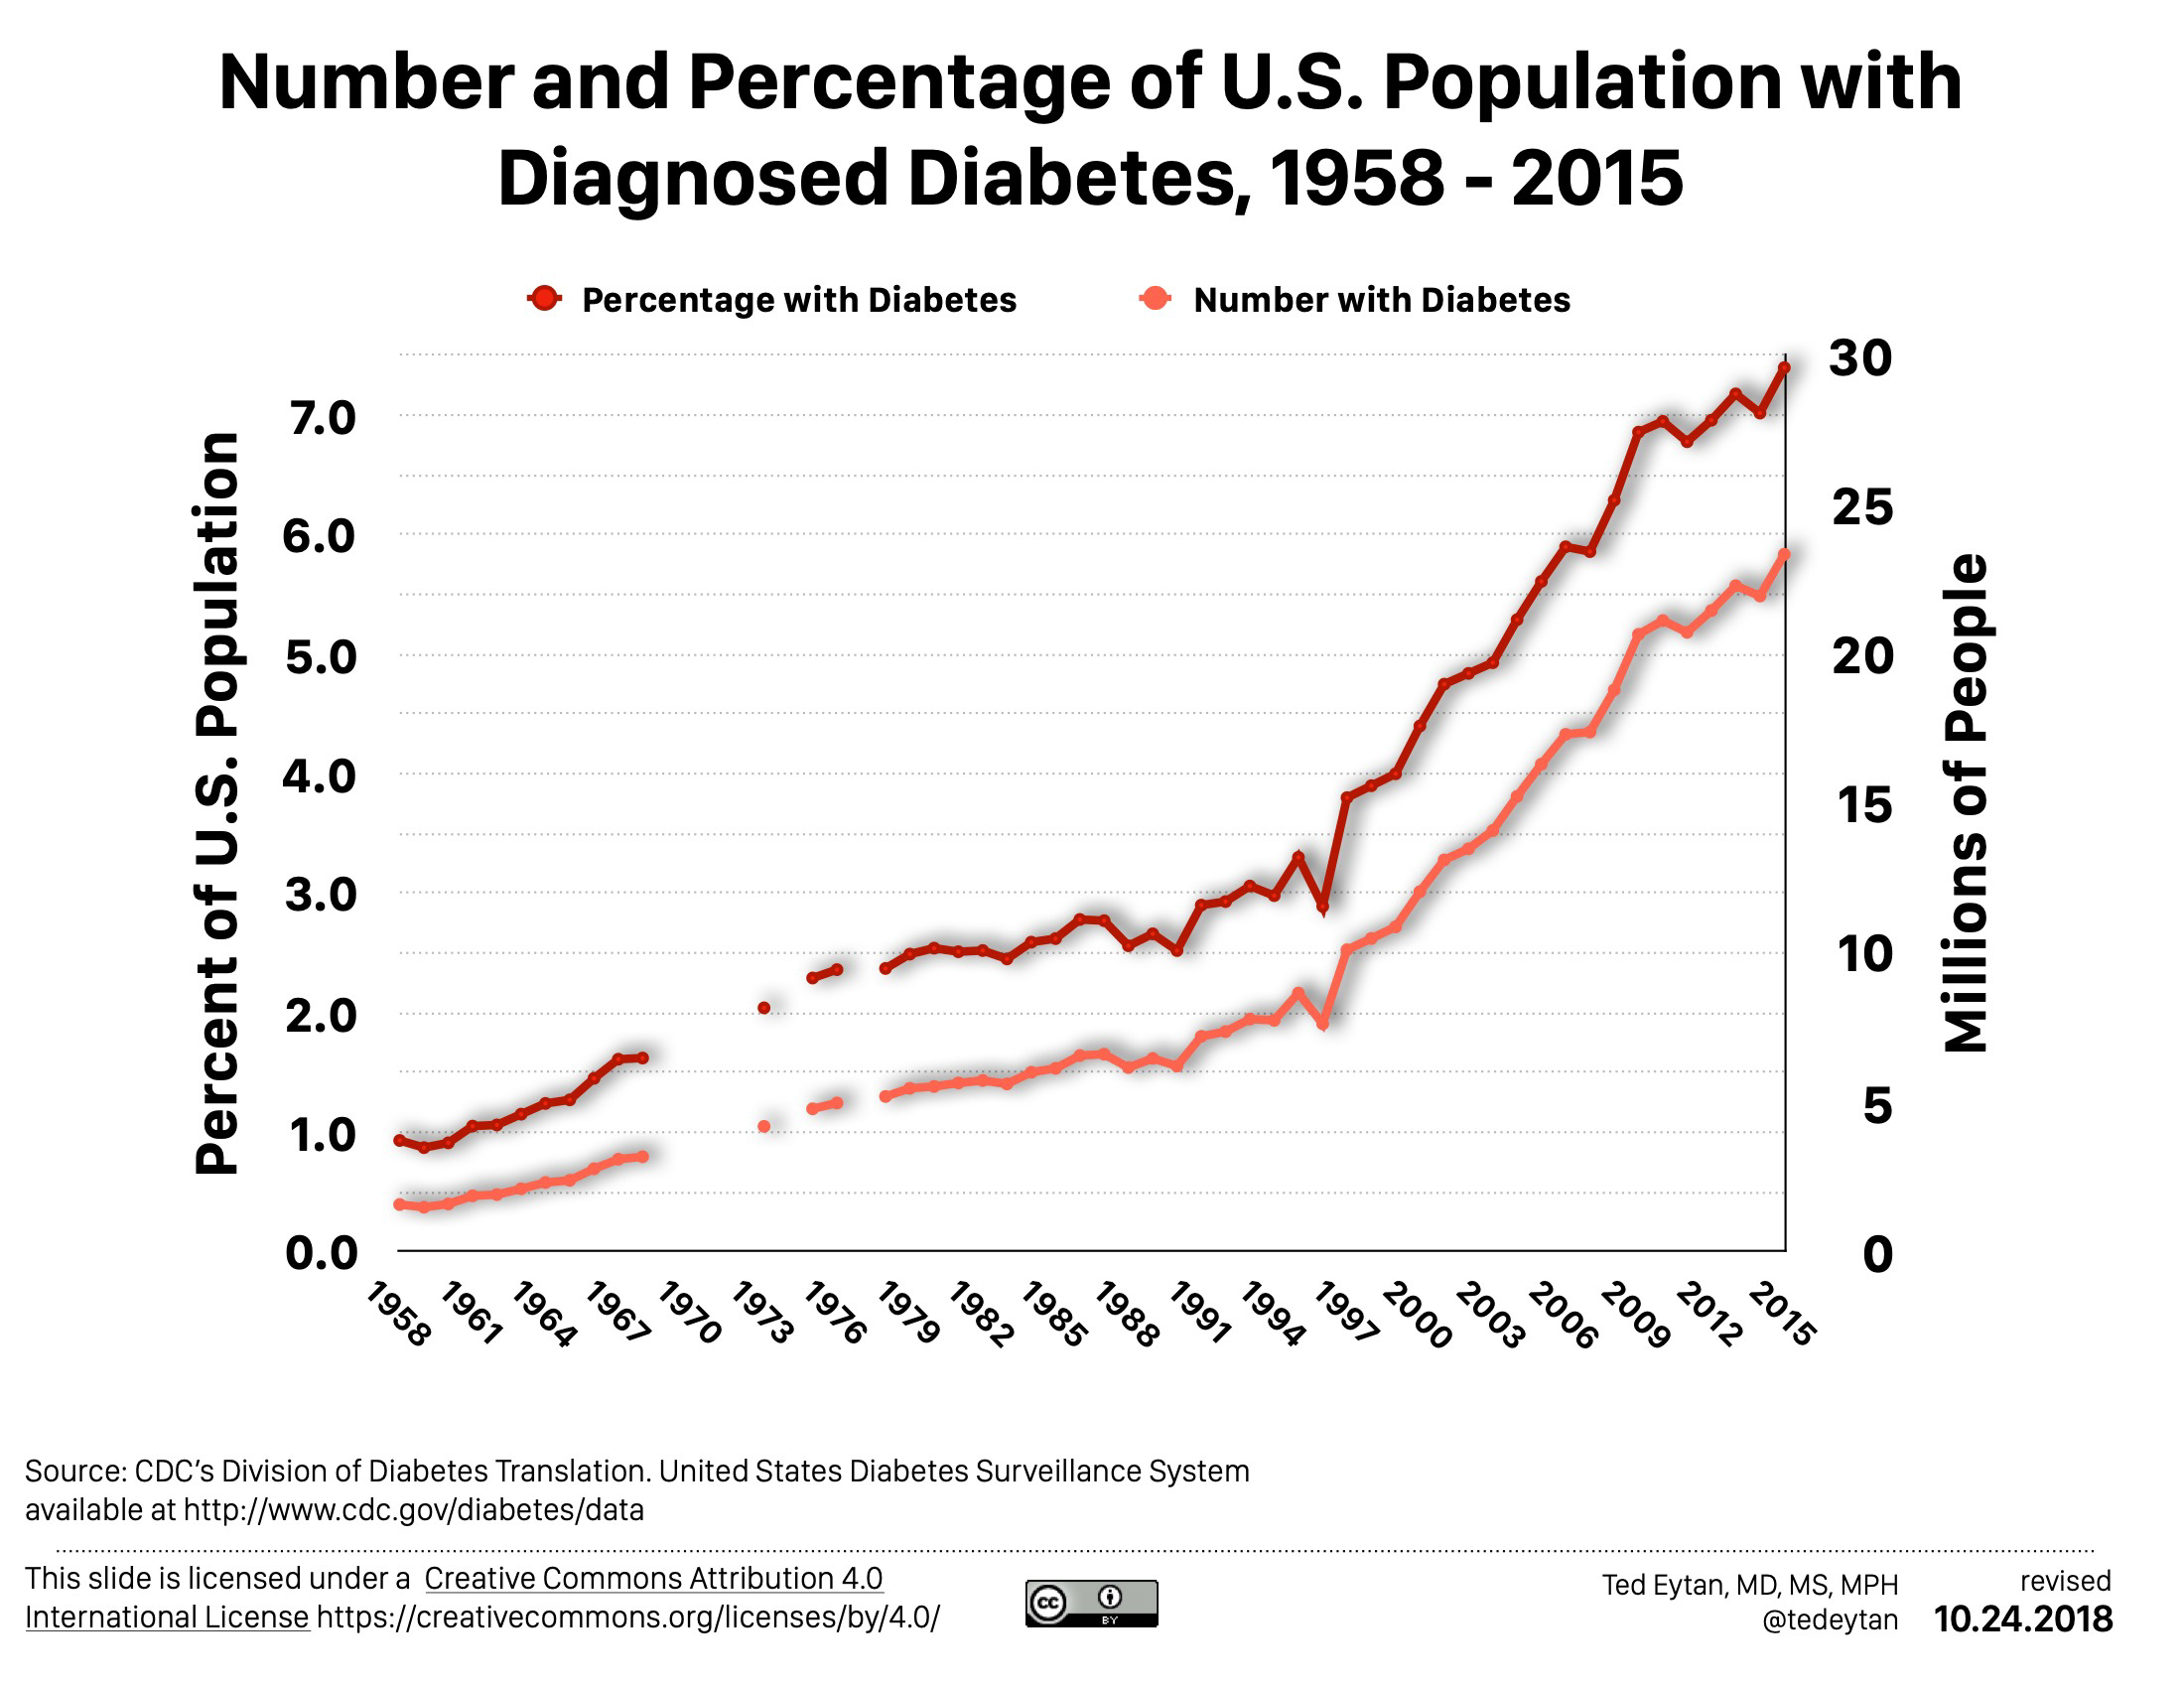 Number and percentage of U.S. Population with diagnosed diabetes, 1958-2015. Shows a dramatic increase, from the percentage of around 3% in the 1990s, to 7% in 2015.